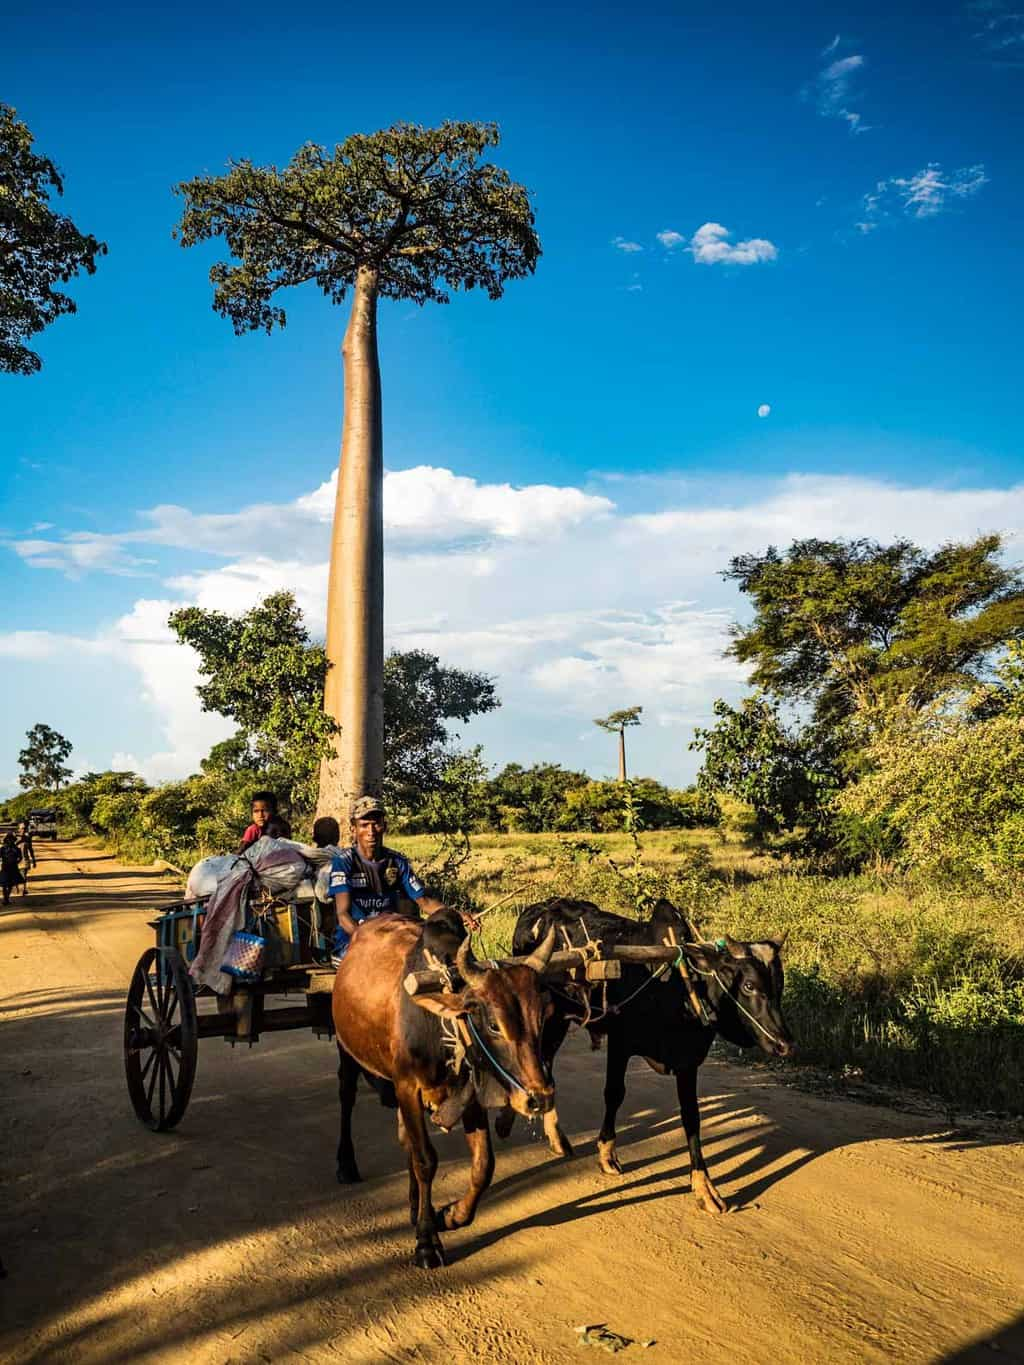 tall Baobab trees with local way of transportation